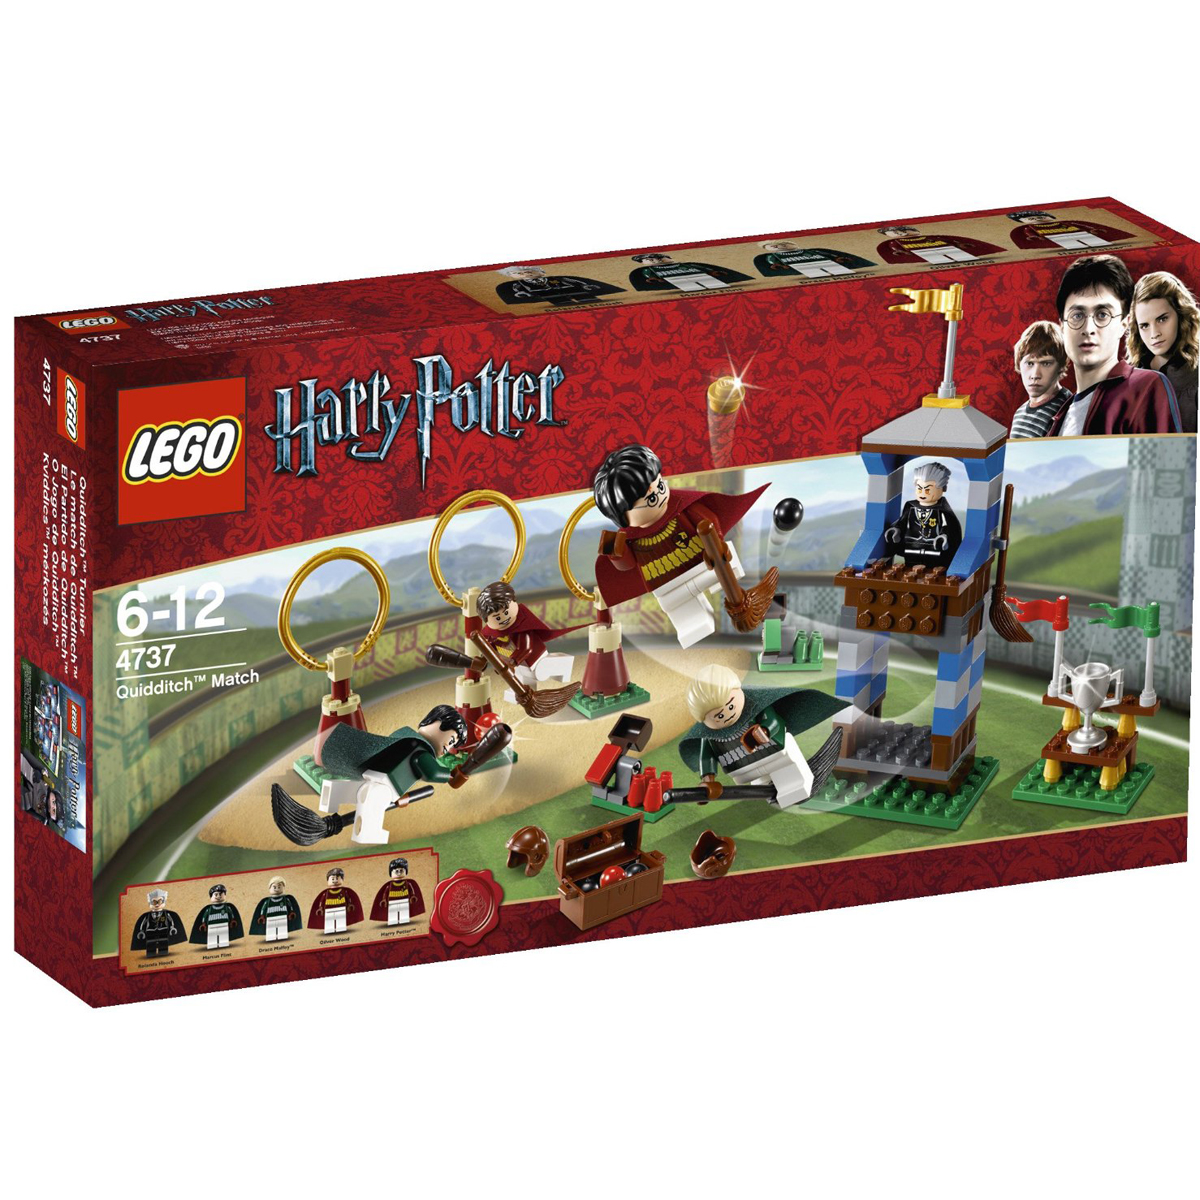 Do choi xep hinh Lego Harry Potter 4737